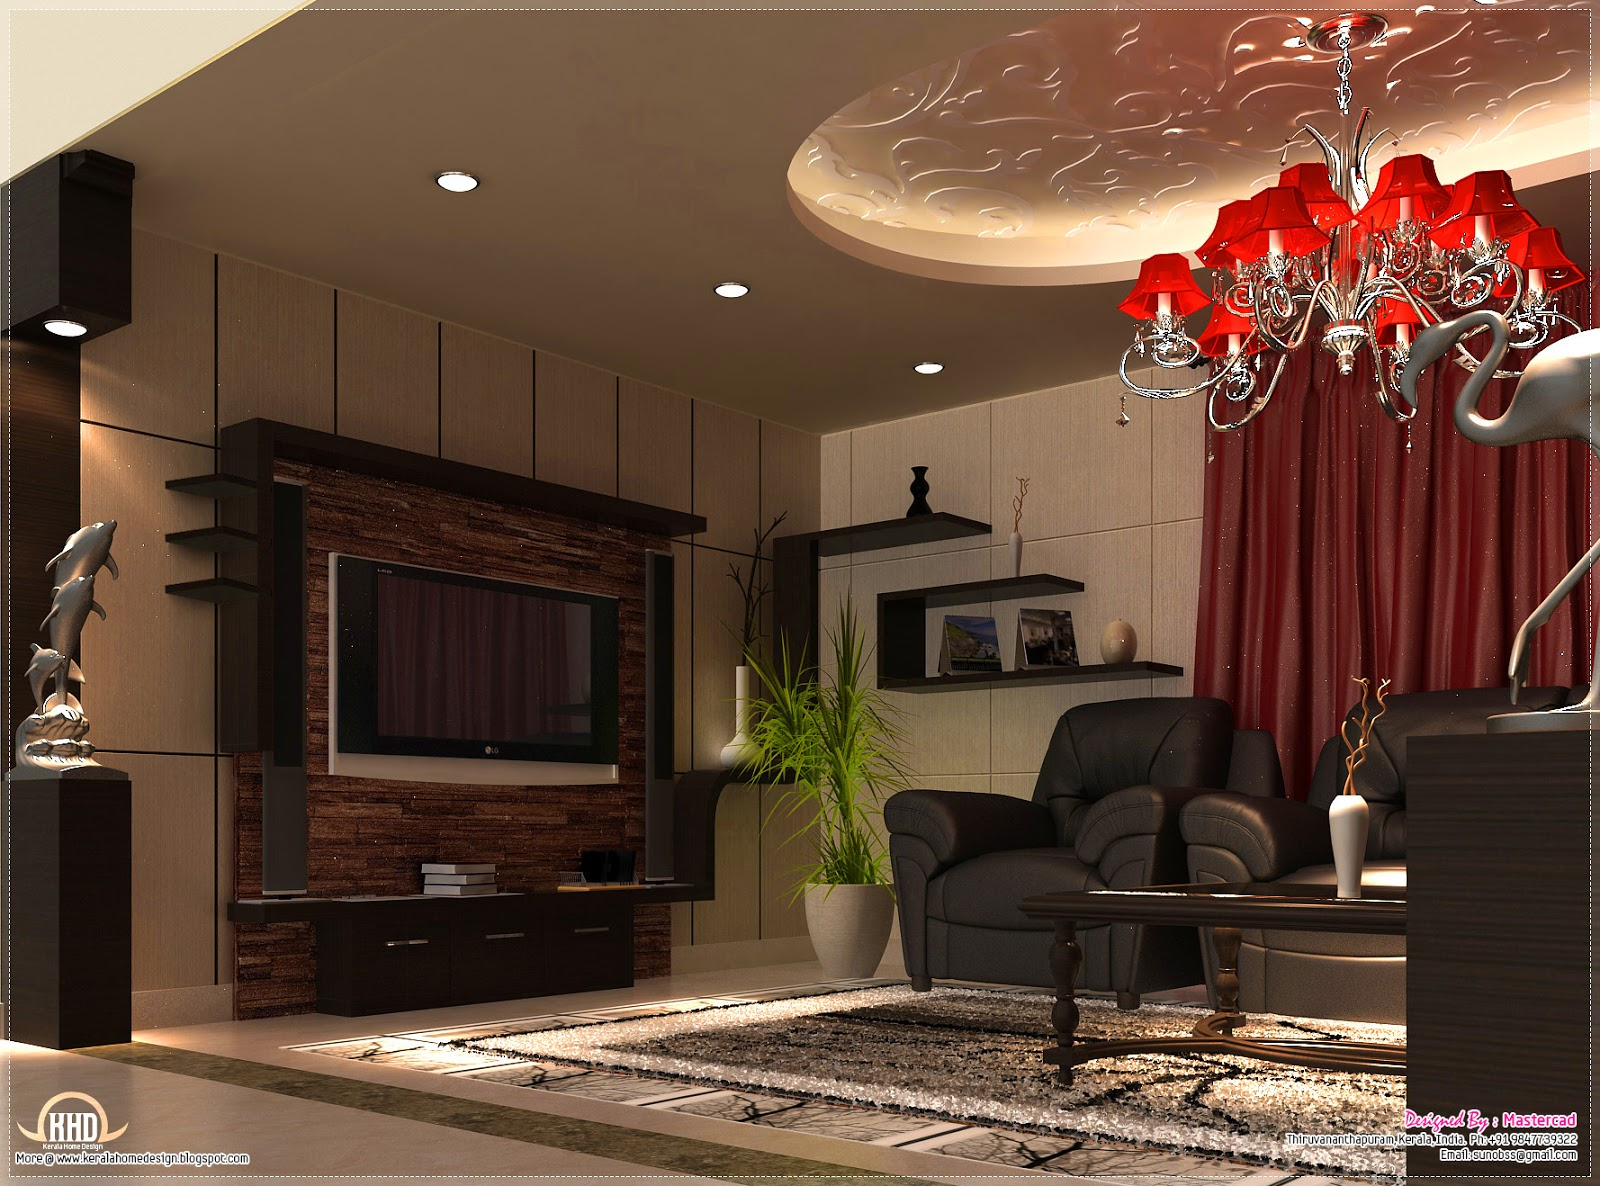 Interior Design Ideas Home Kerala Plans